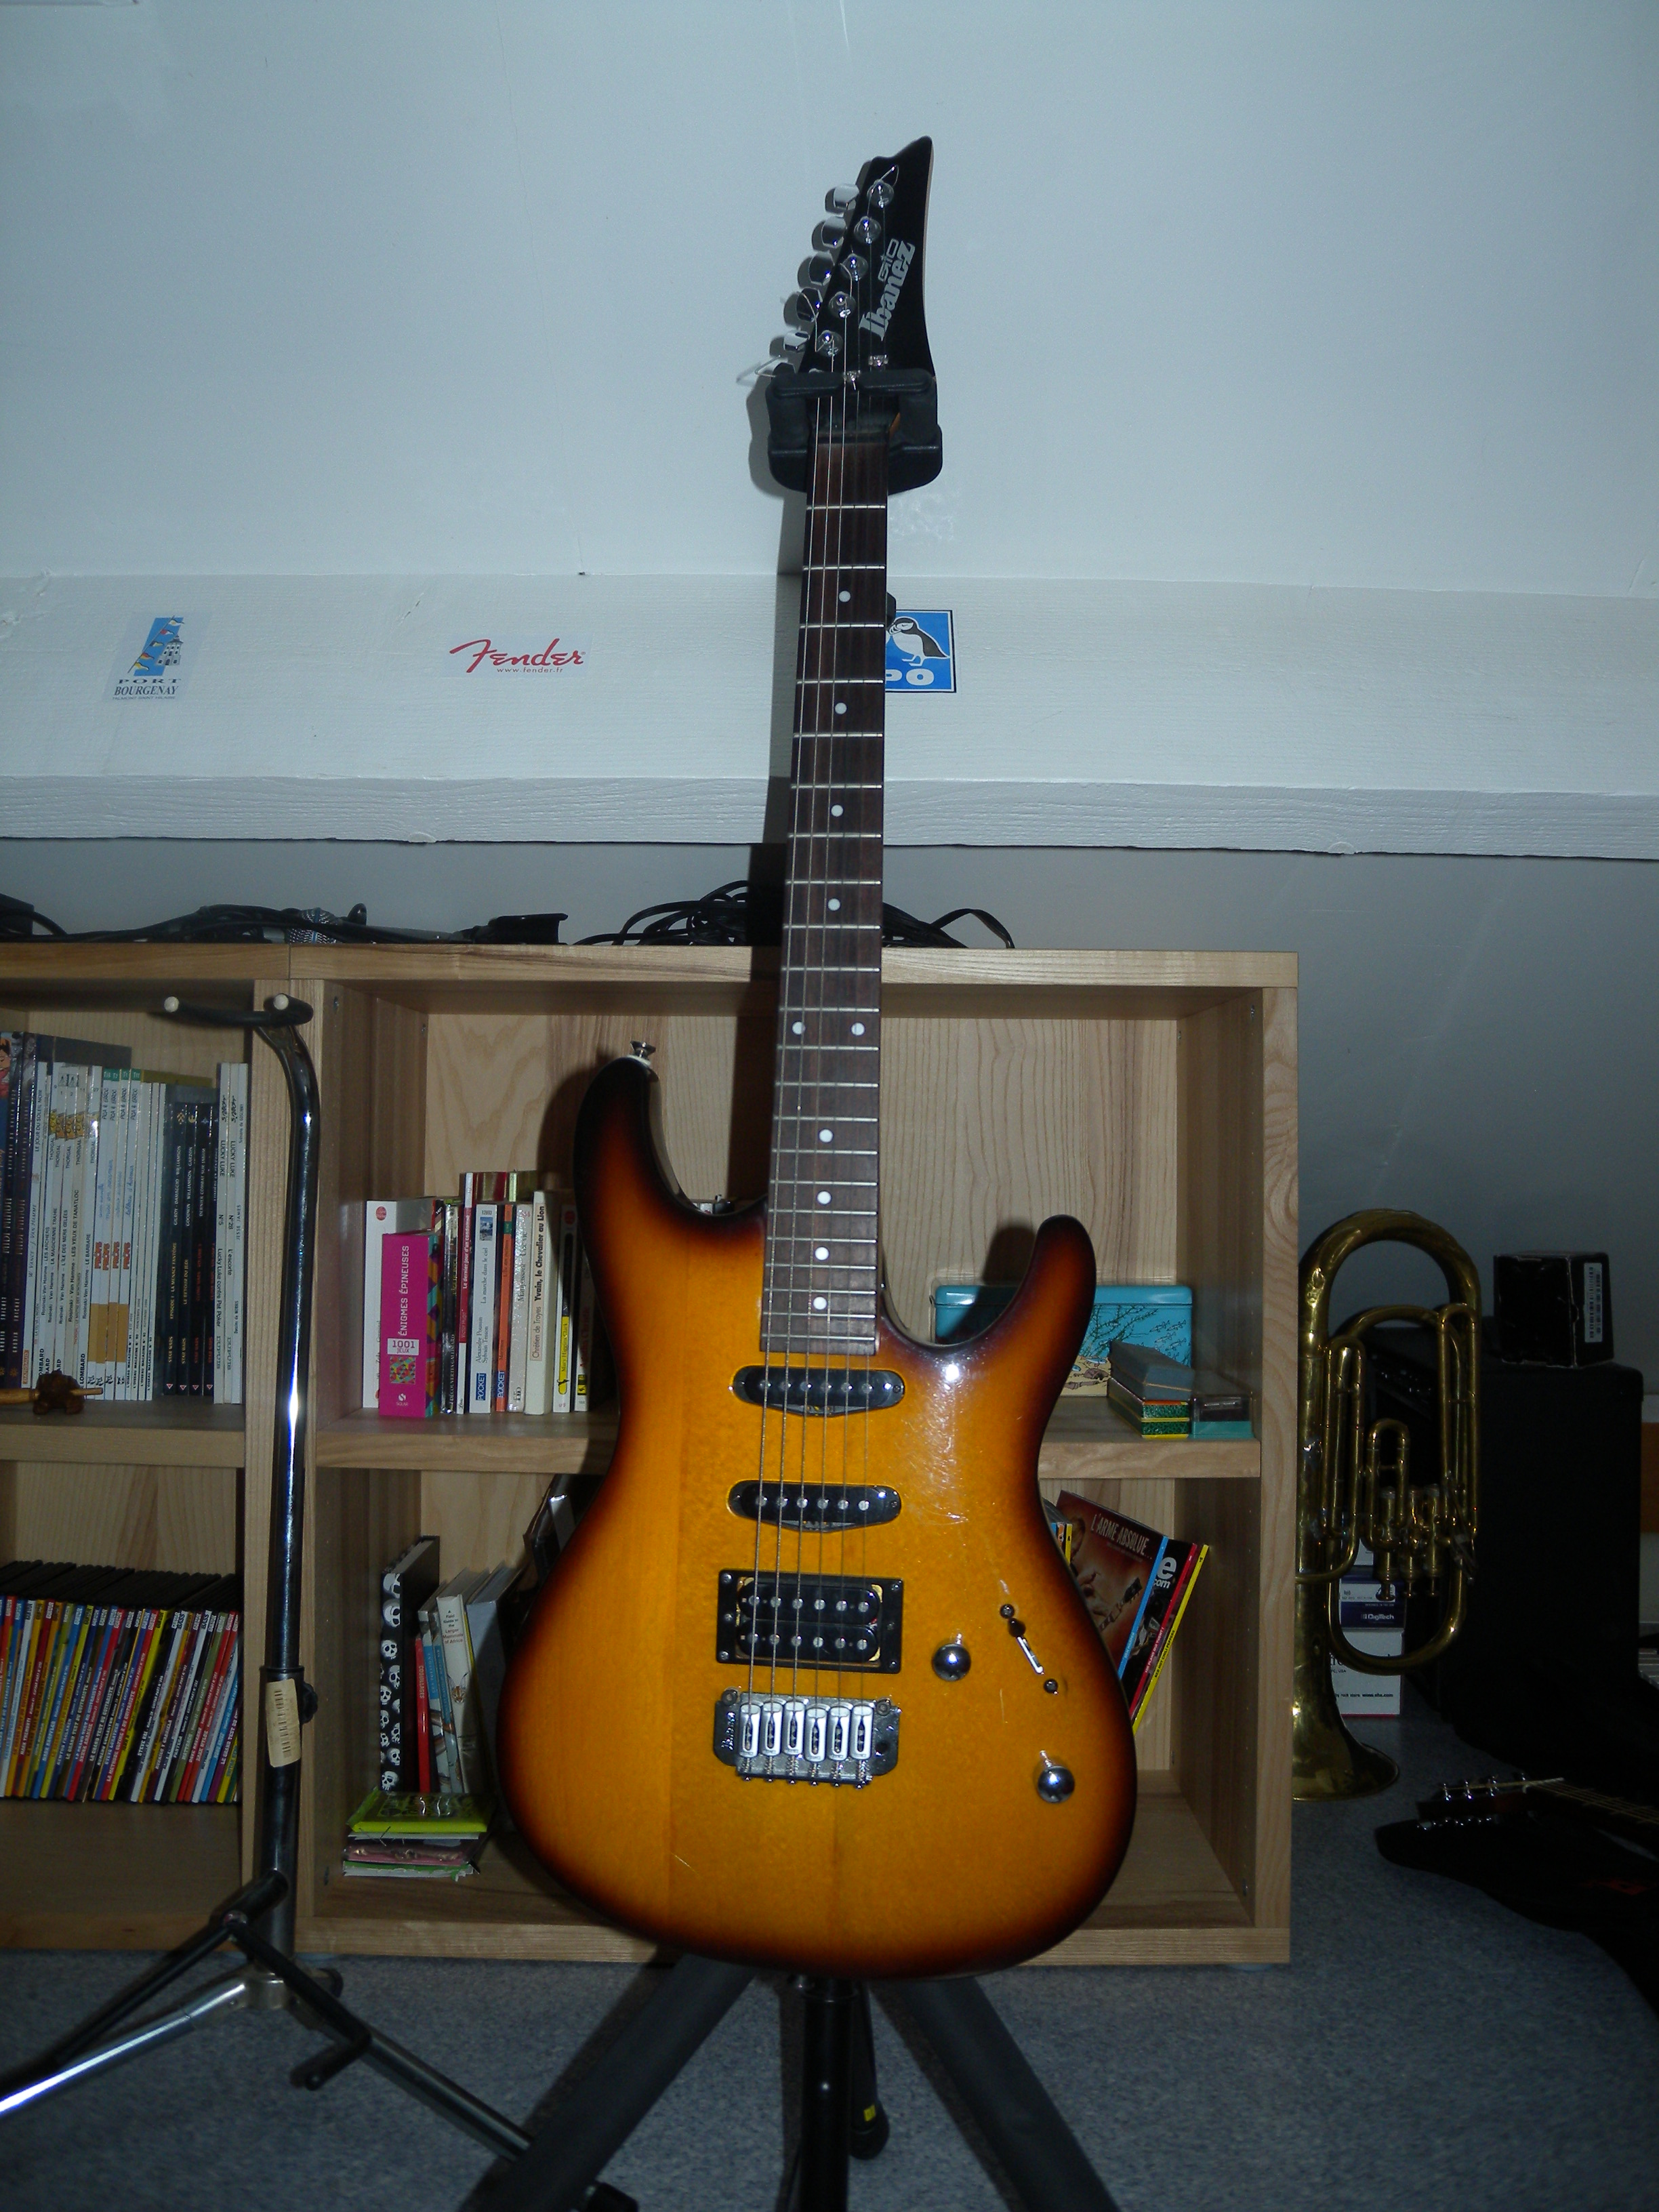 Ibanez Grx70 Pictures to Pin on Pinterest - PinsDaddy